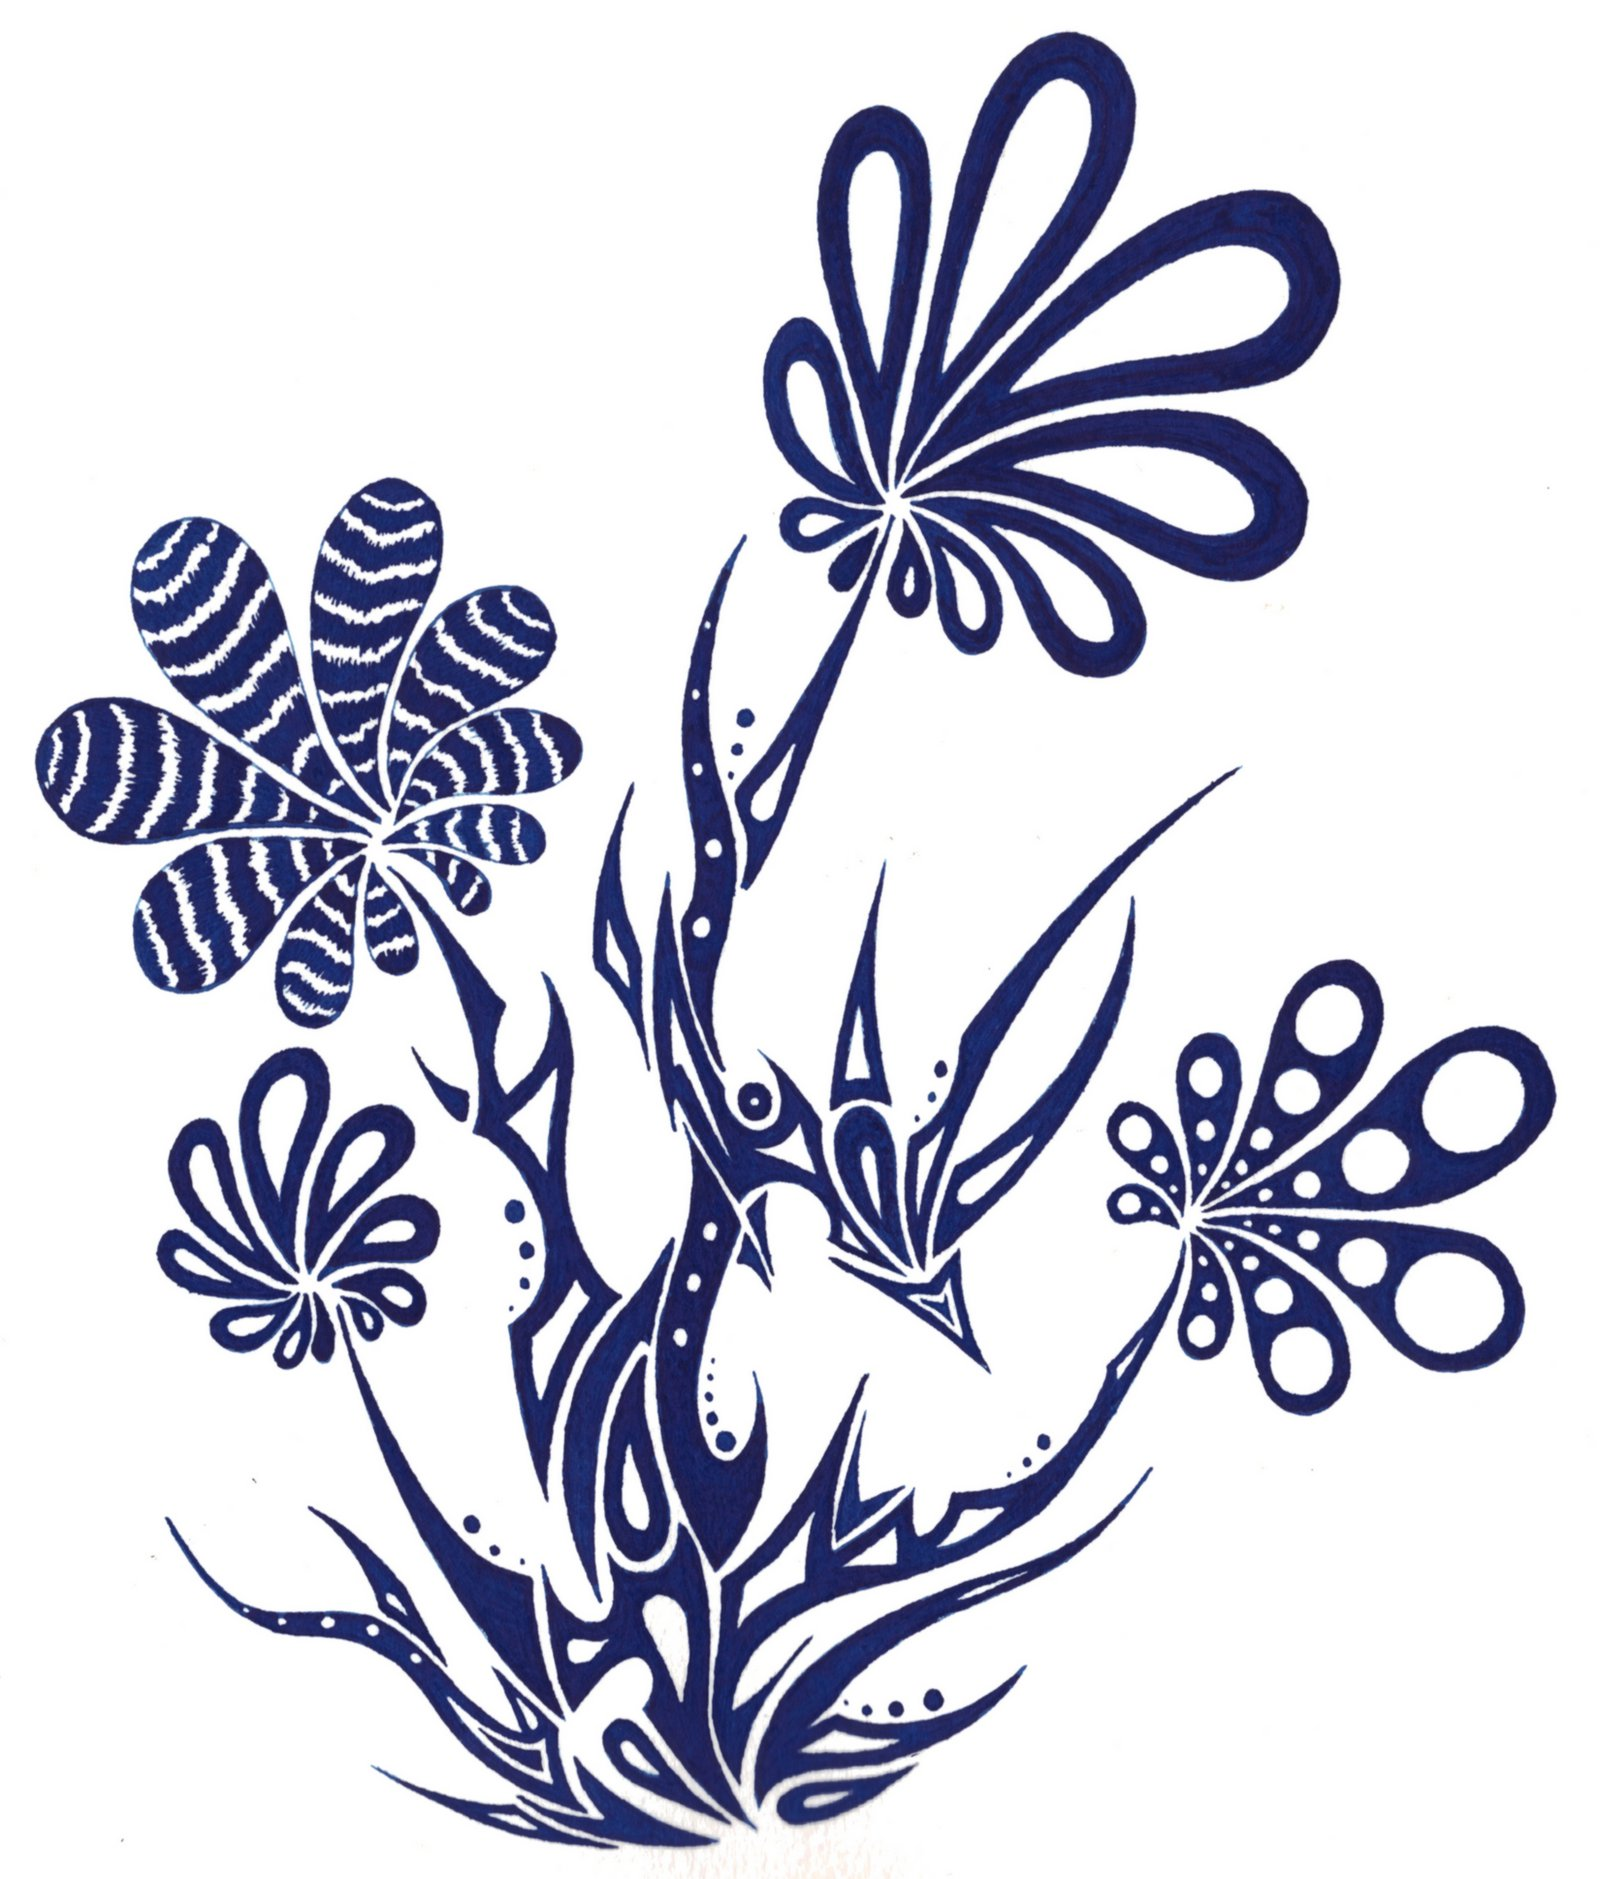 Blue flowers drawing at getdrawings free for personal use blue 1600x1879 tribal blue flowers by dessins fantastiques on deviantart izmirmasajfo